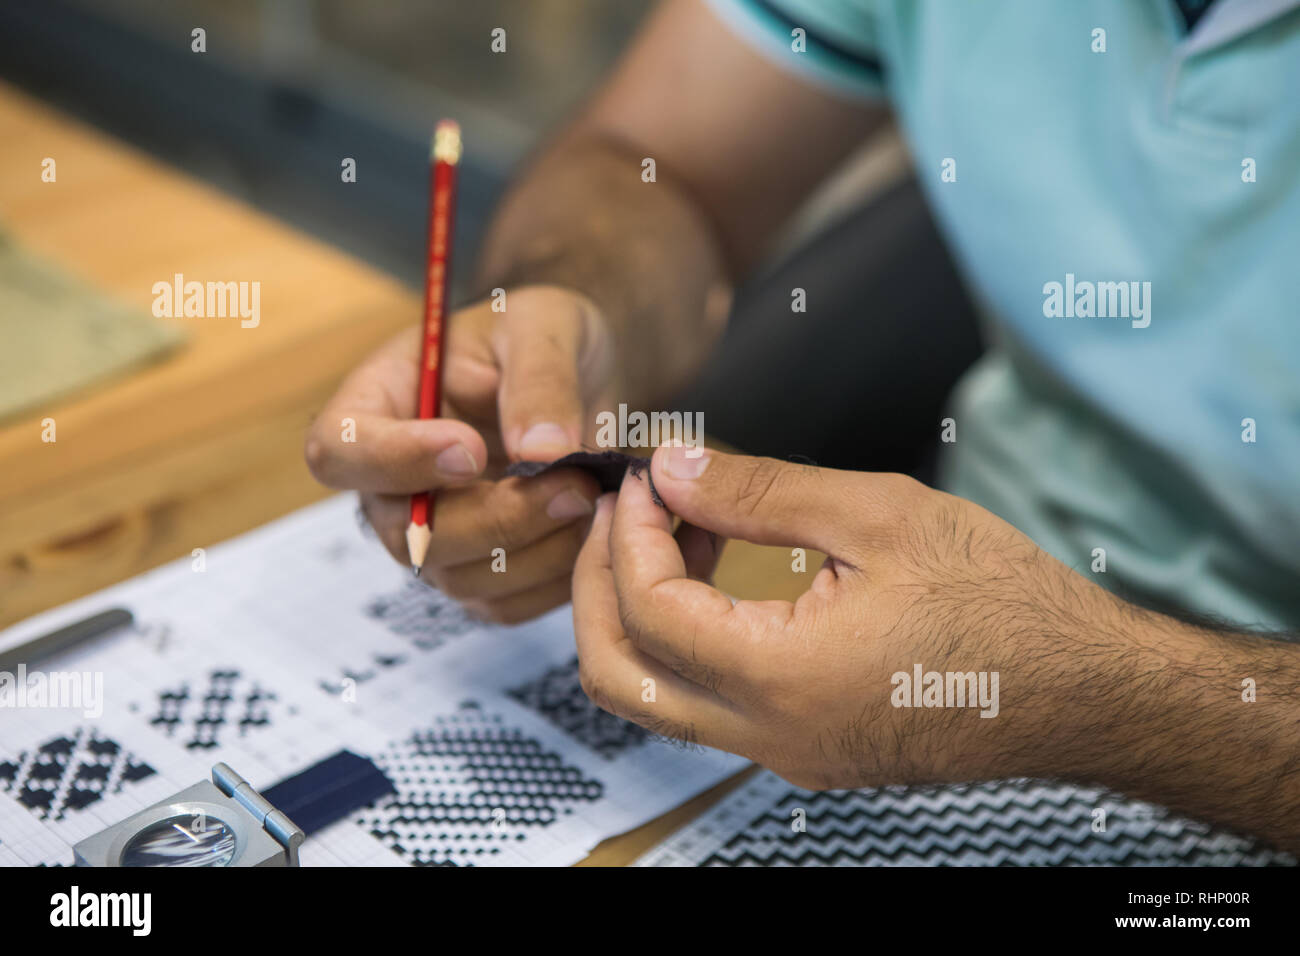 Man holding a piece of fabric and checked tissue for quality control. Textile industry concept background image. - Stock Image